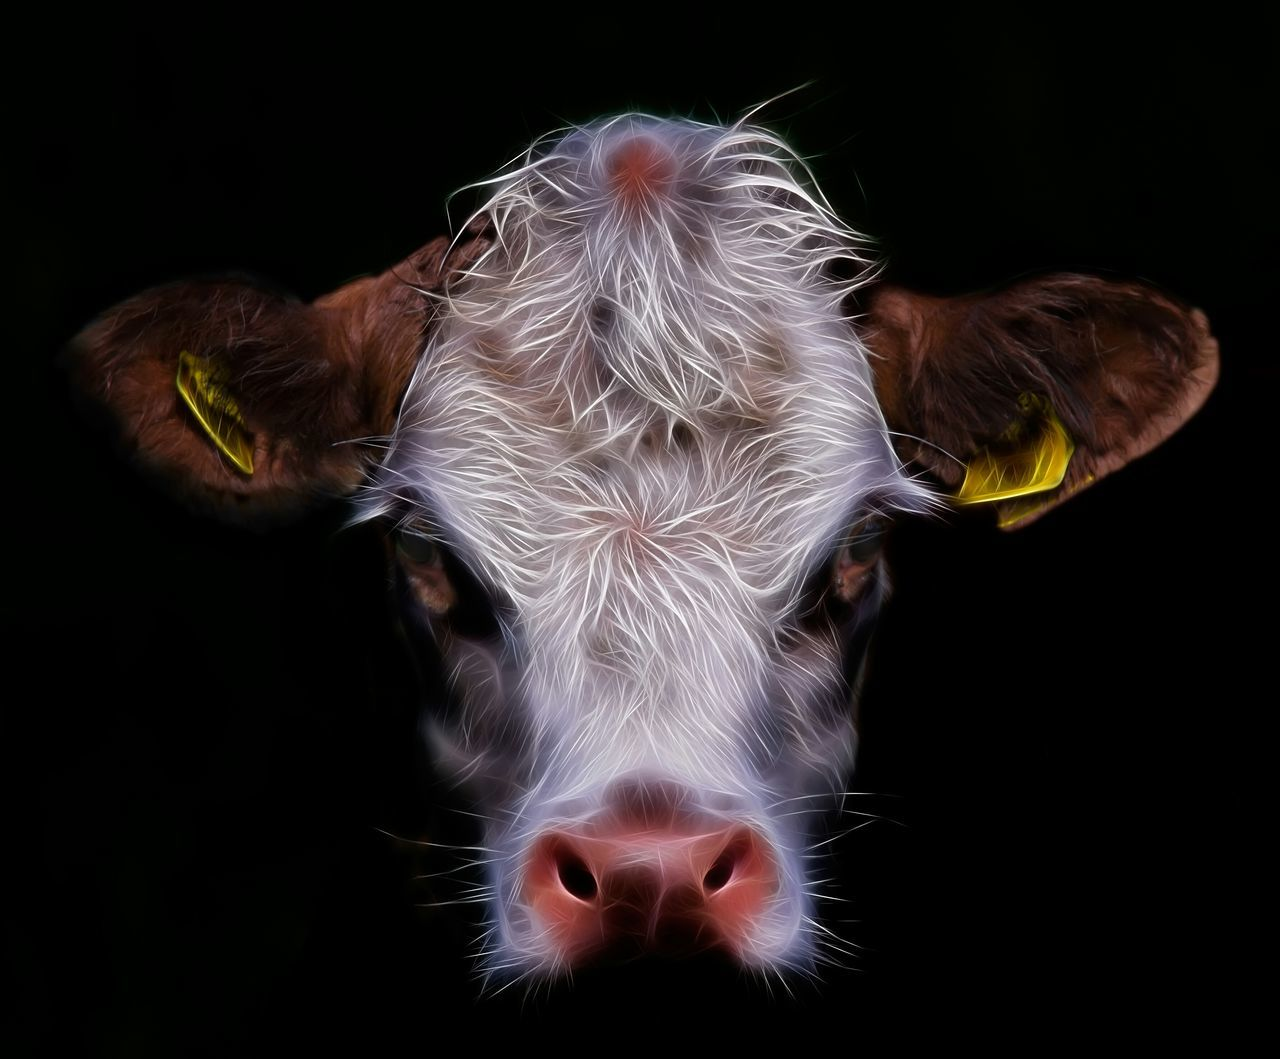 Cow Face. Cow Cattle Farm Cow Face Mood Scary Face Getting Creative Natures Diversities Fine Art Photography Colour Of Life